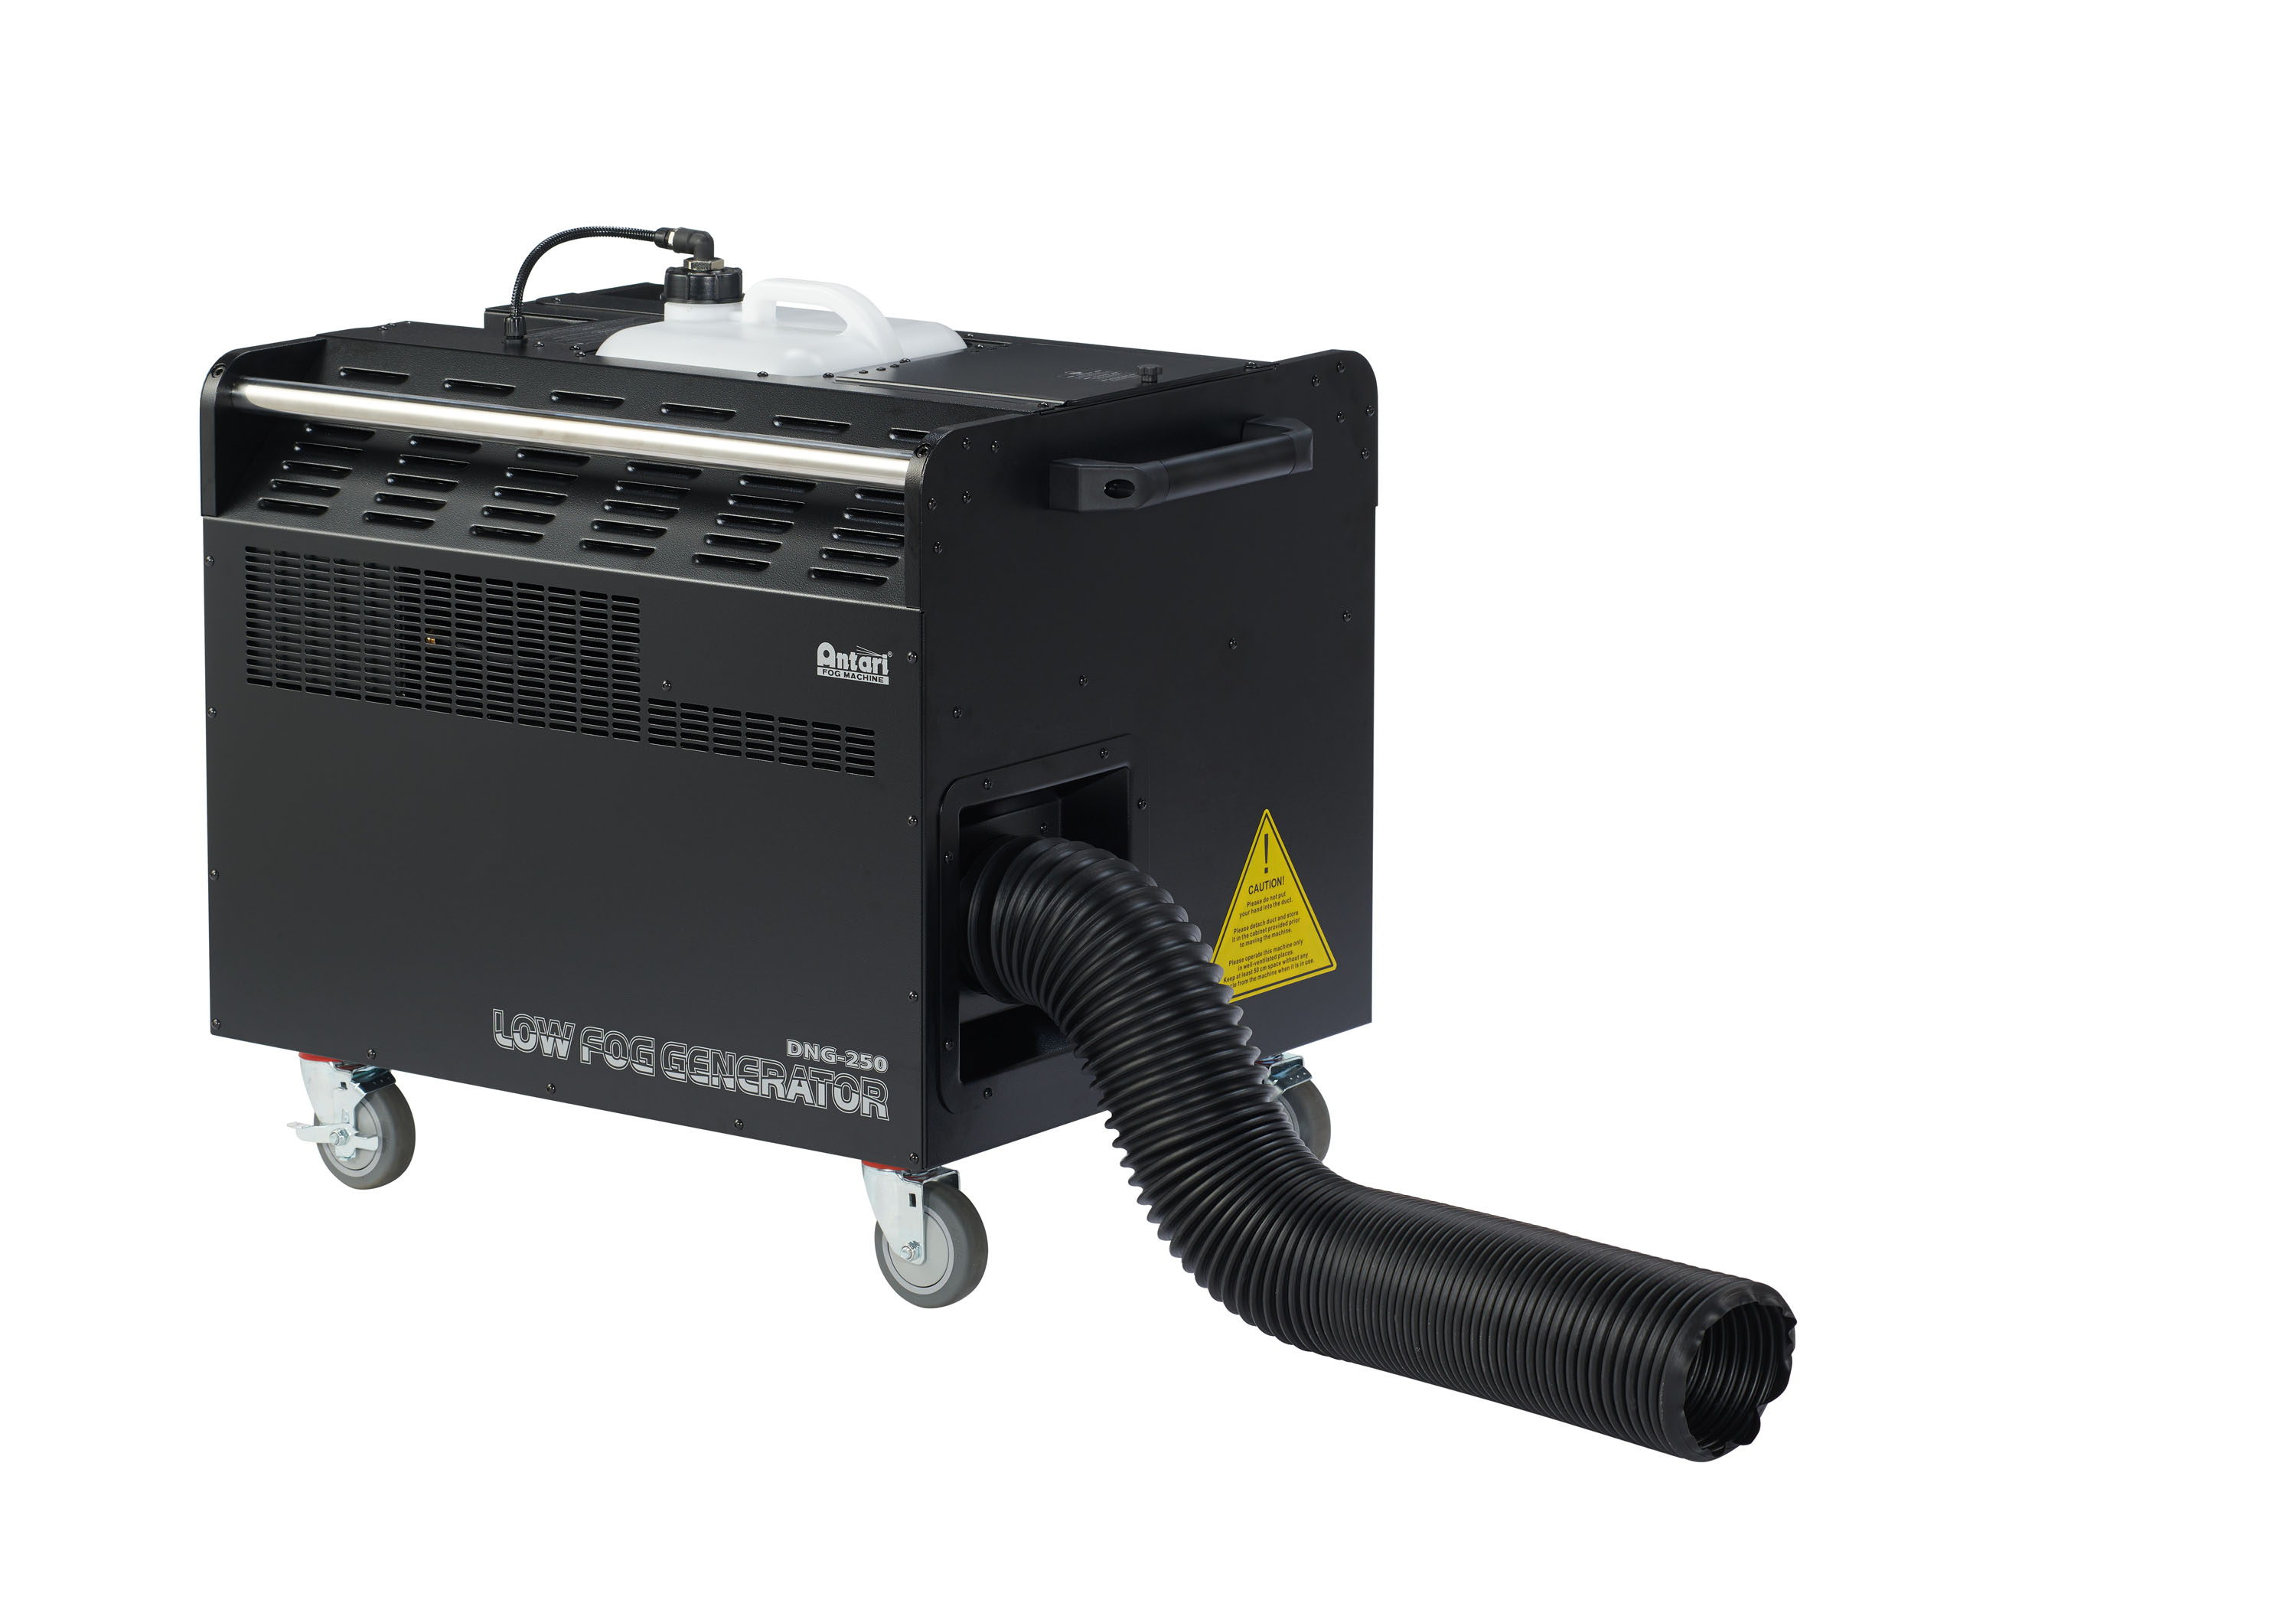 DNG-250 Low Fog Machine